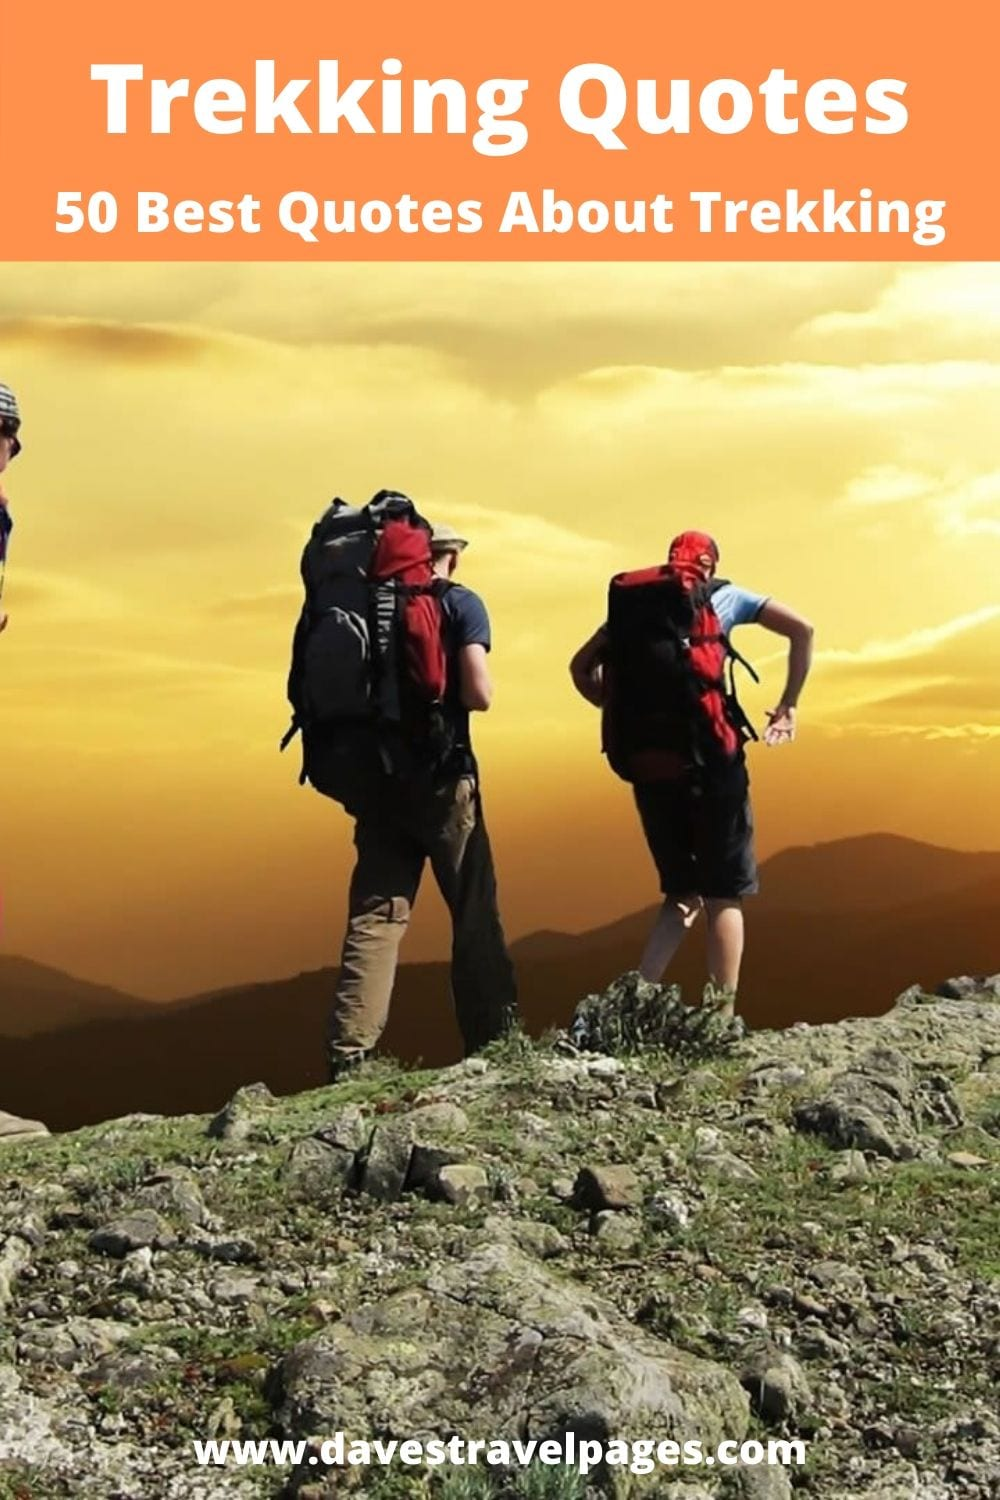 50 of the best hiking and trekking quotes